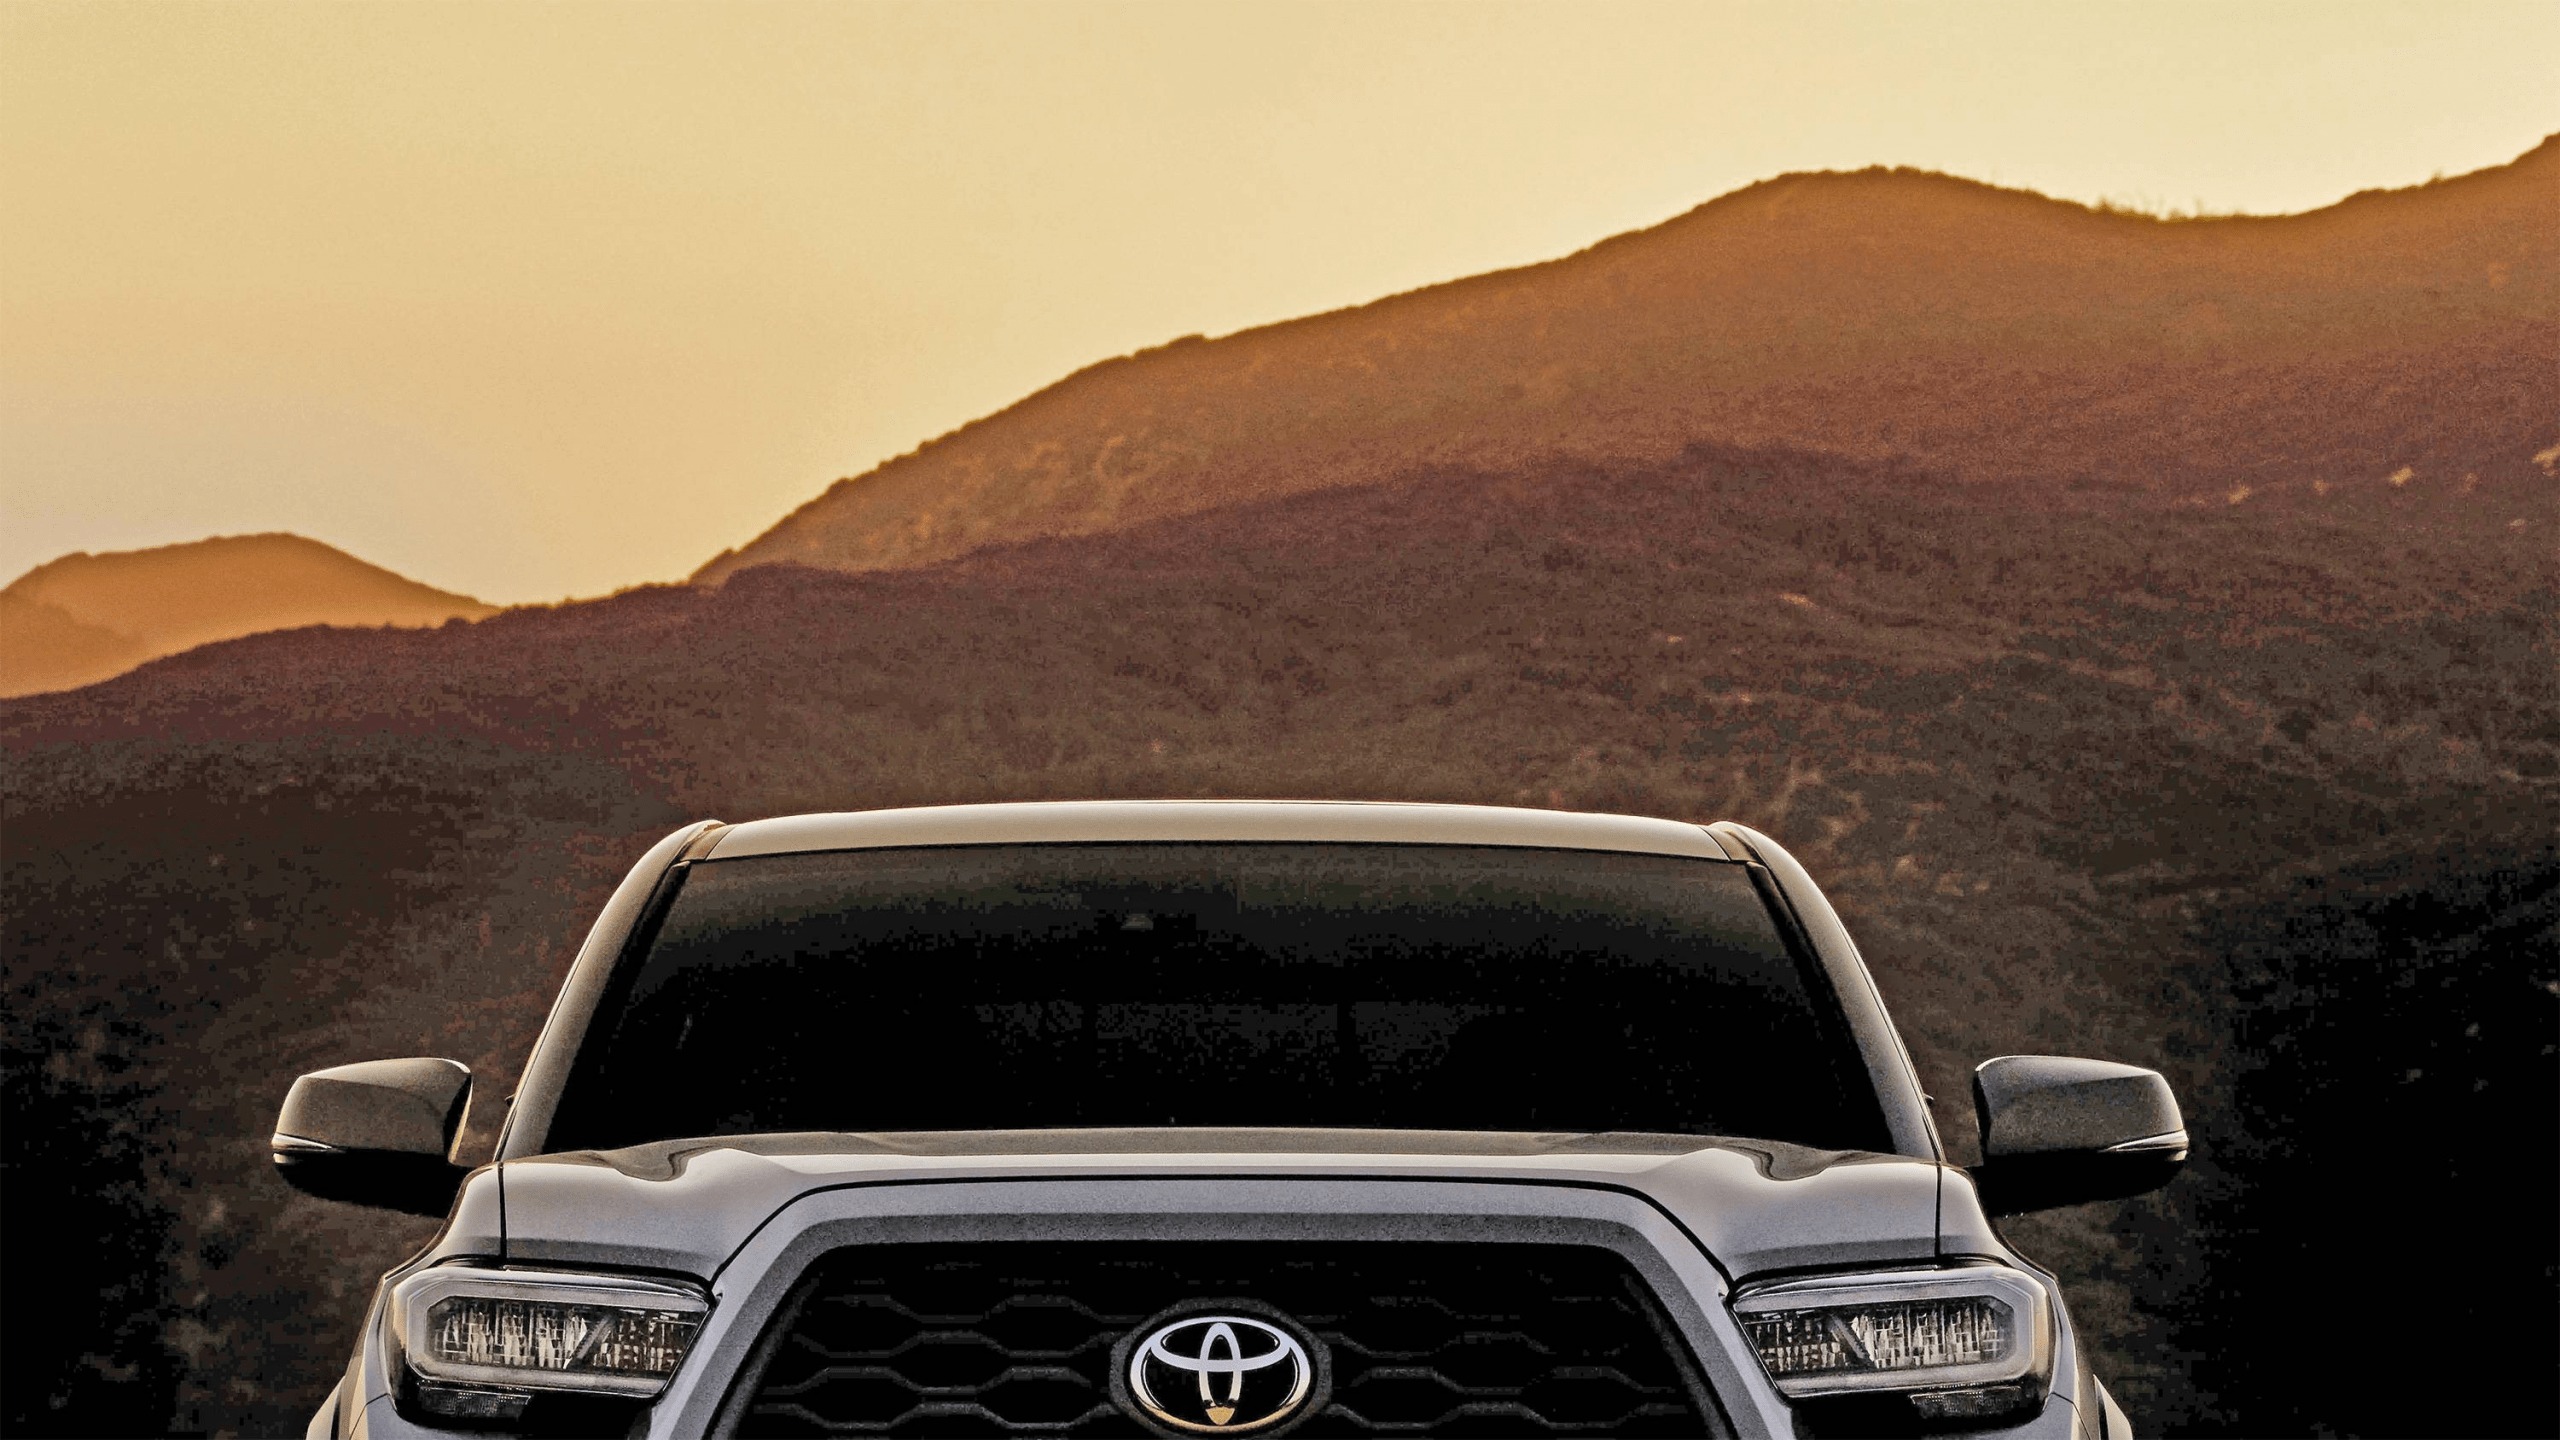 2021 Toyota Tacoma Performance And New Engine In 2020 Toyota Tacoma New Engine Tacoma